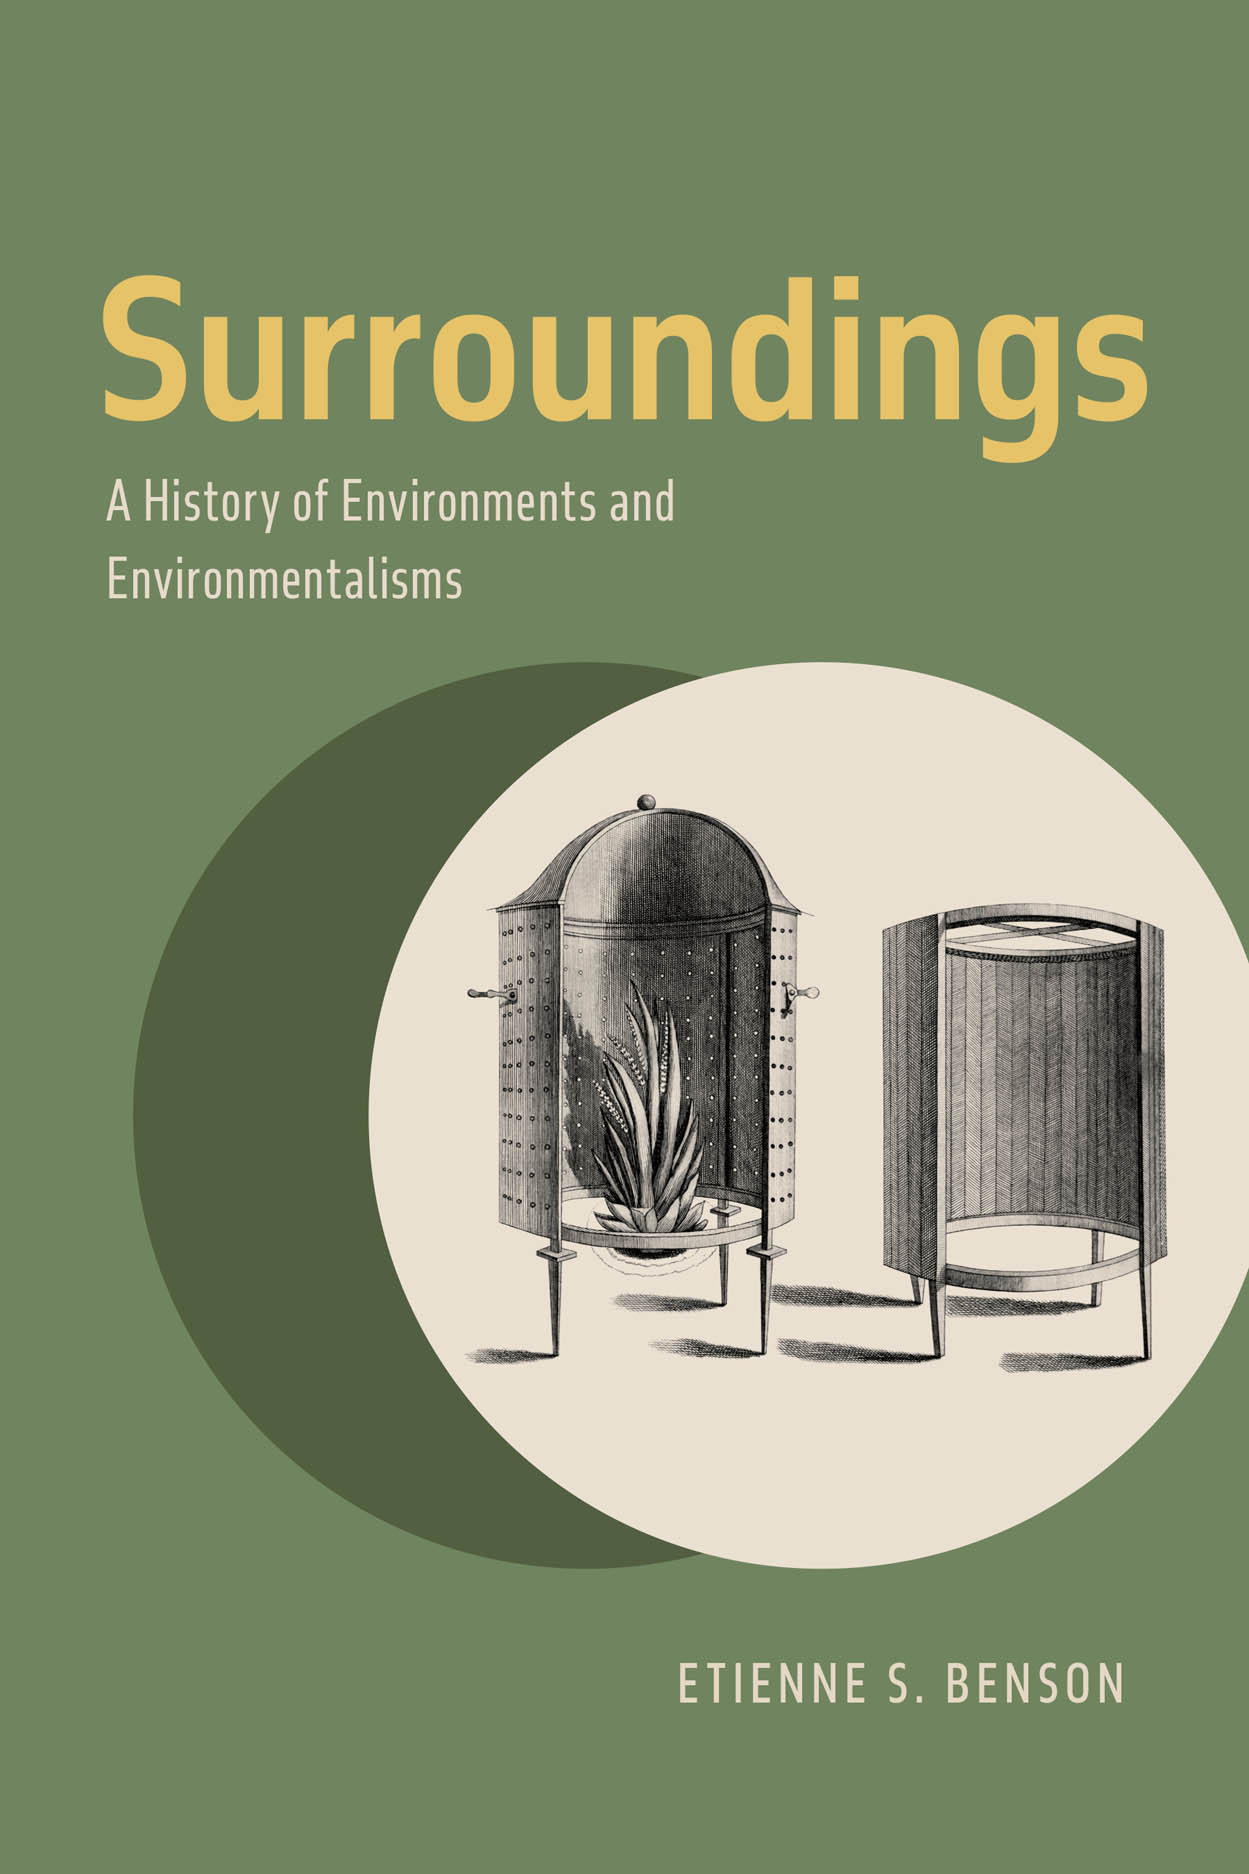 Surroundings: A History of Environments and Environmentalisms